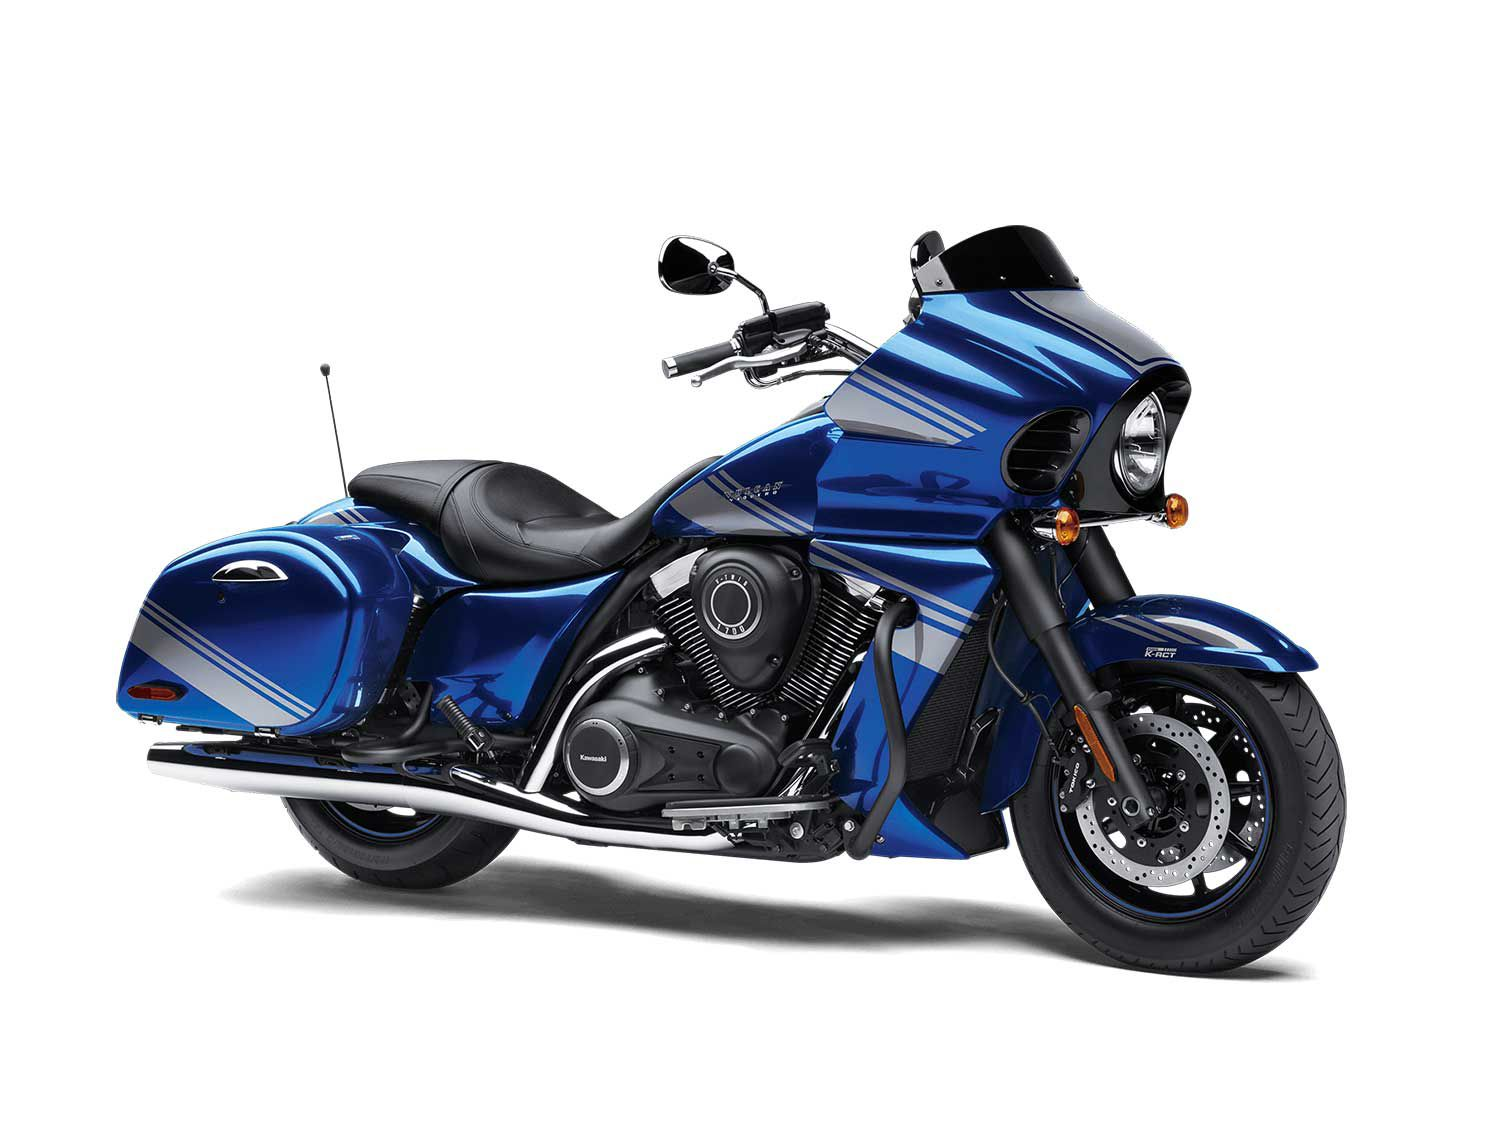 The 2020 Kawasaki Vulcan 1700 Vaquero ABS is a powerful, full-size bagger with all the fixings but very few frills.